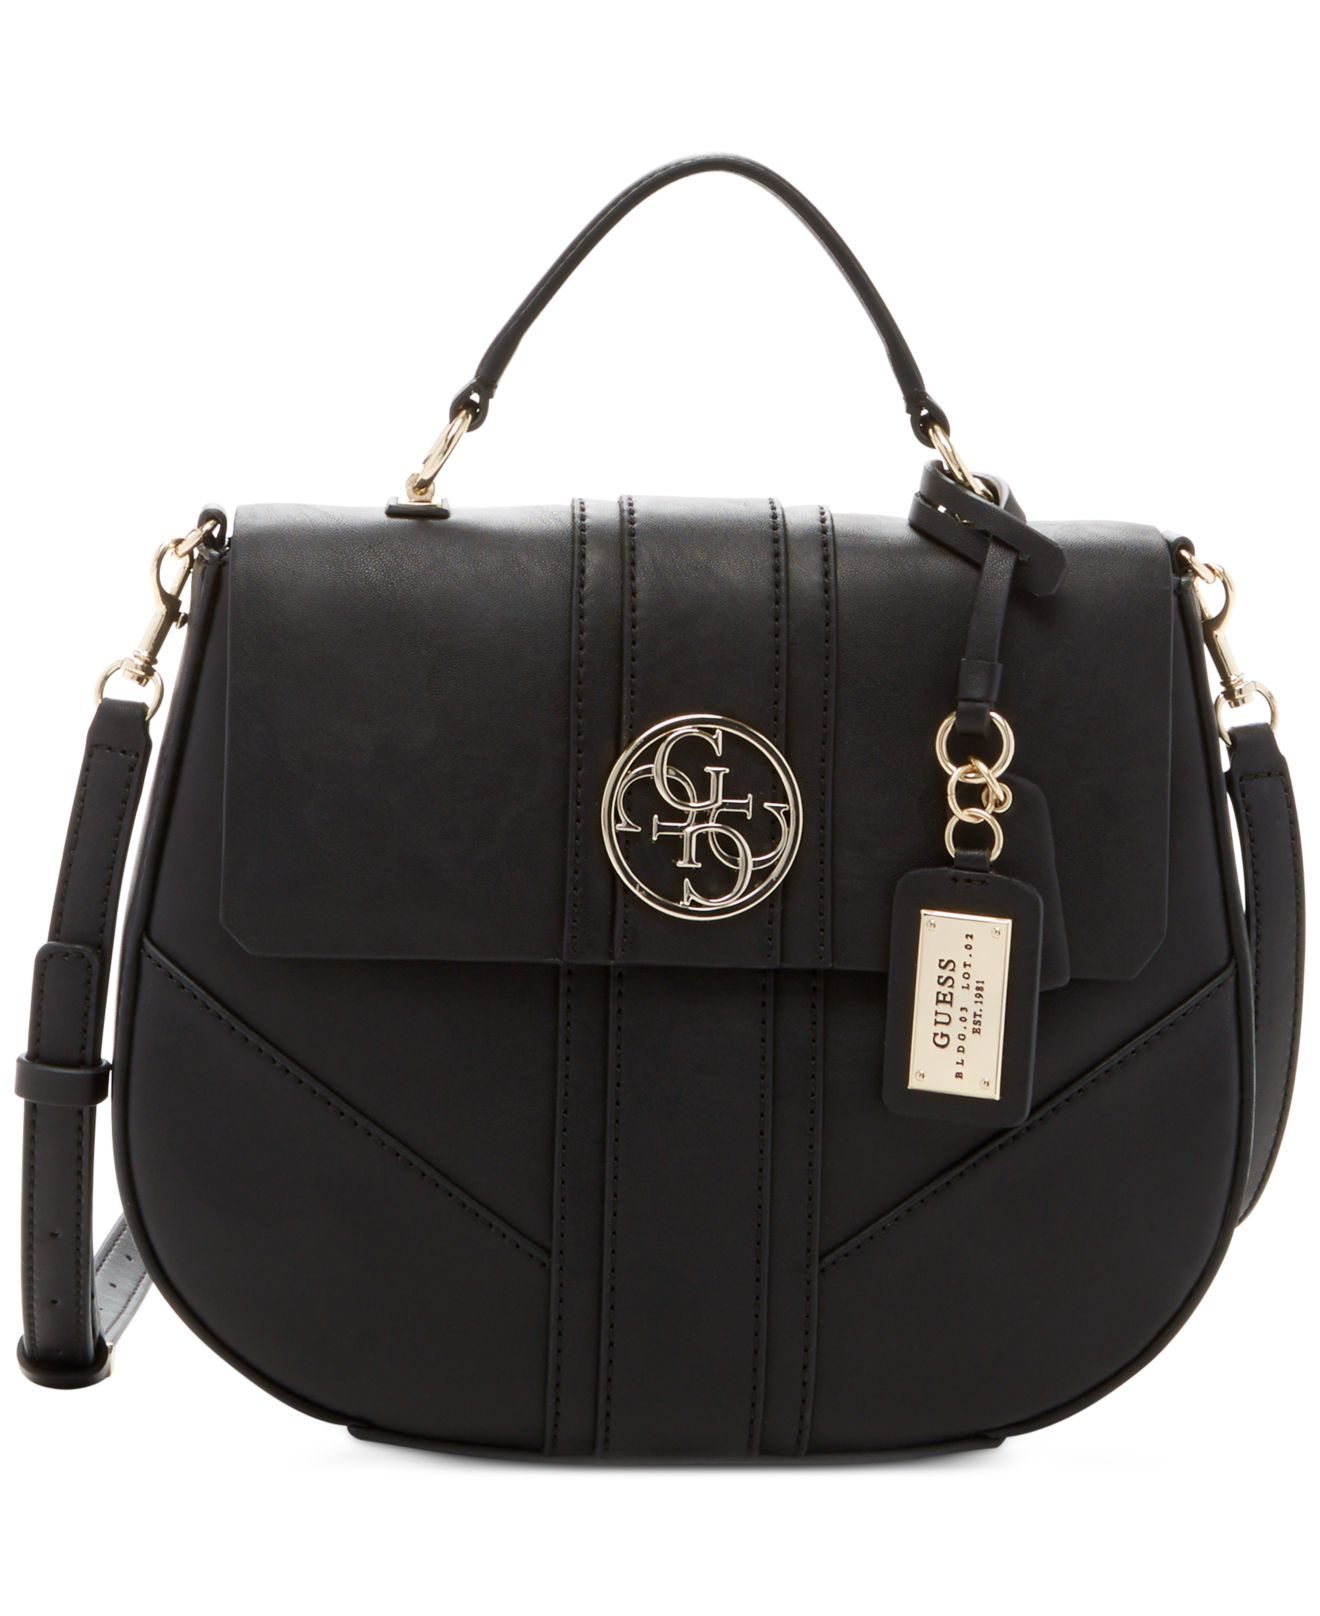 Guess Crossbody Tassen : Book of guess sling bag for women in india by isabella